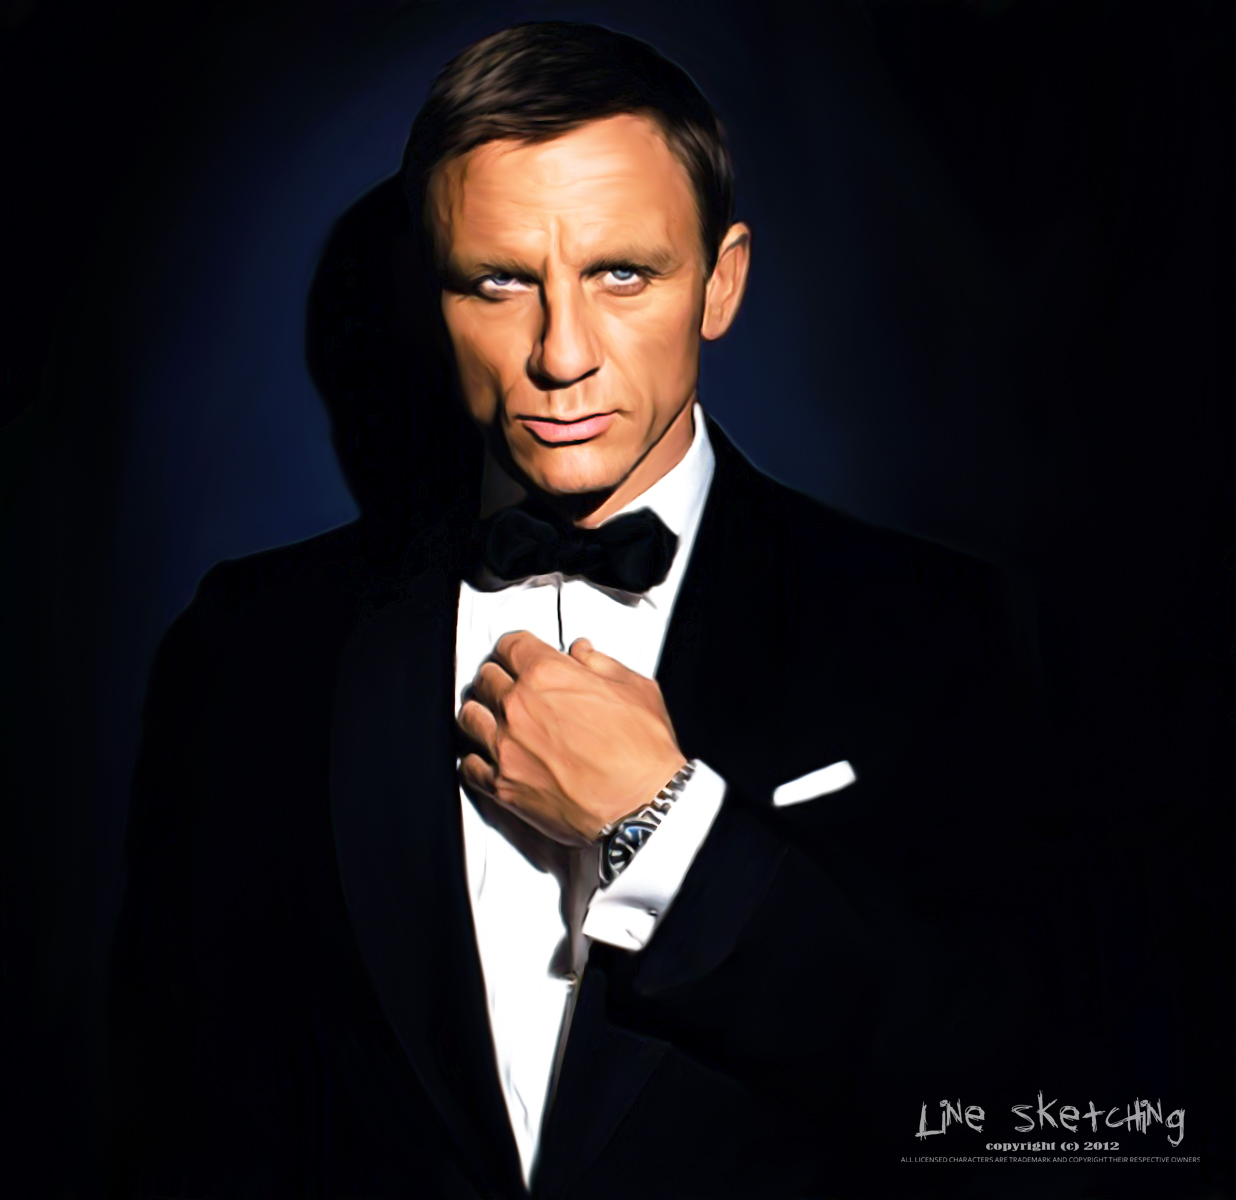 Daniel Craig as James Bond by 171779 on DeviantArt